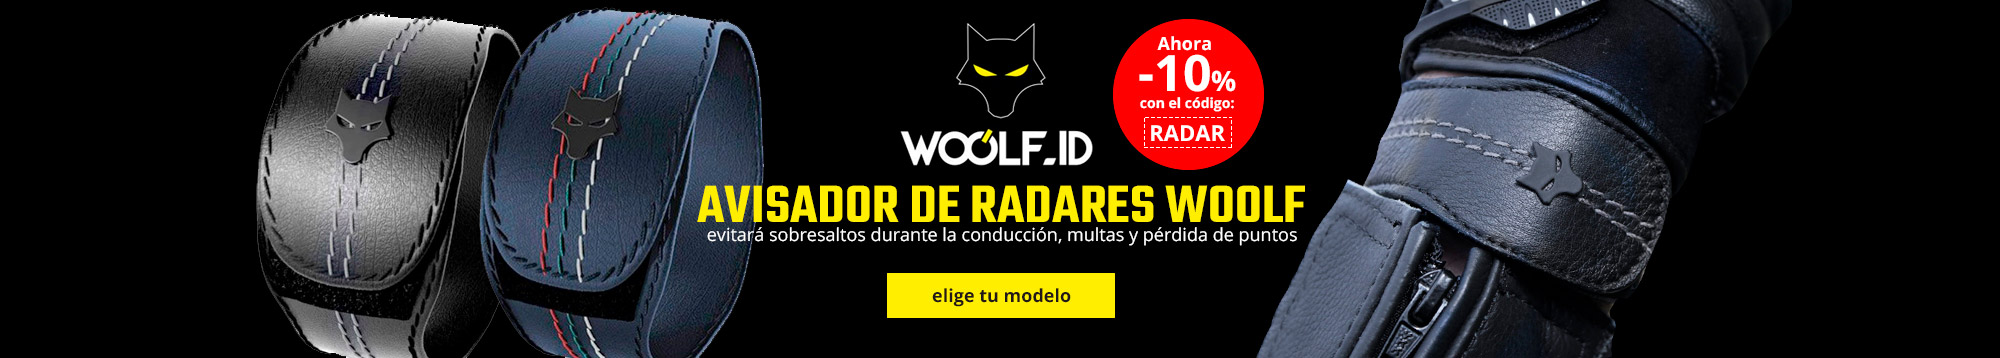 -10% Radar Woolf